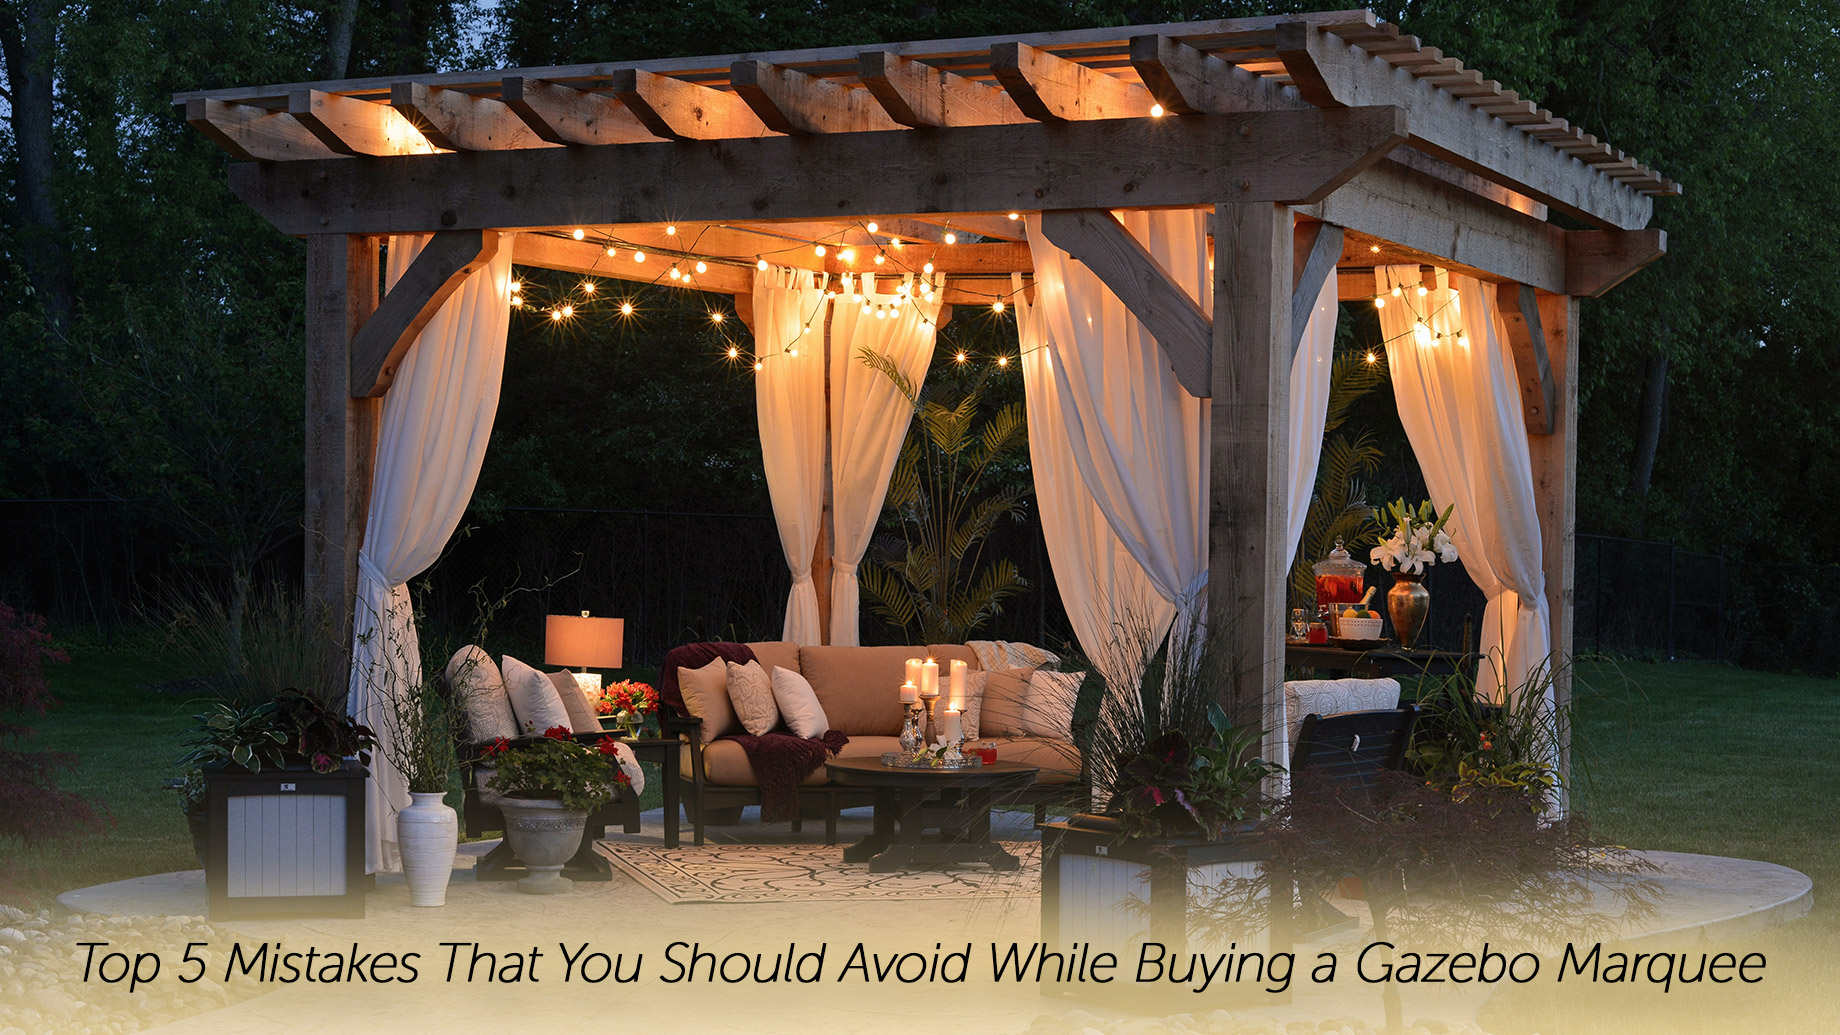 Top 5 Mistakes That You Should Avoid While Buying a Gazebo Marquee